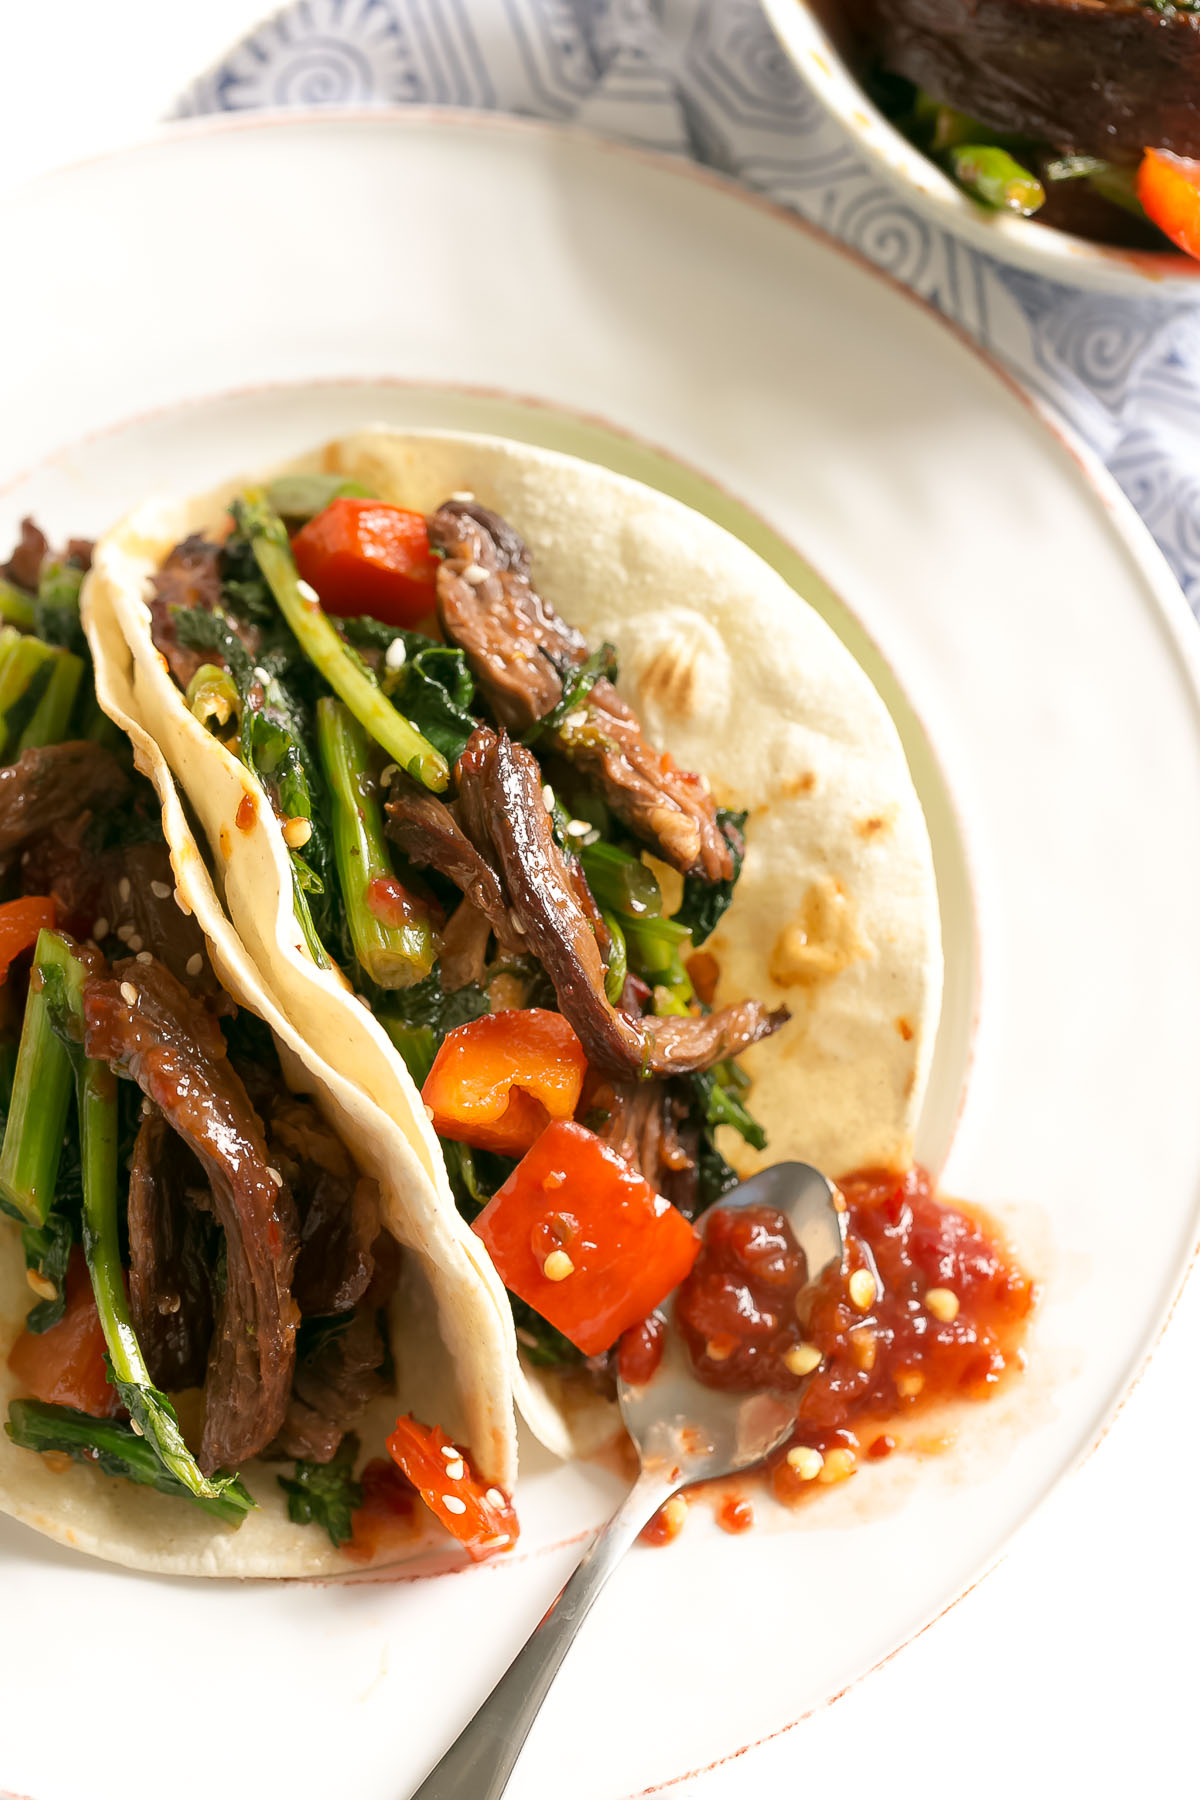 Spicy Beef Tacos with Broccoli Rabe